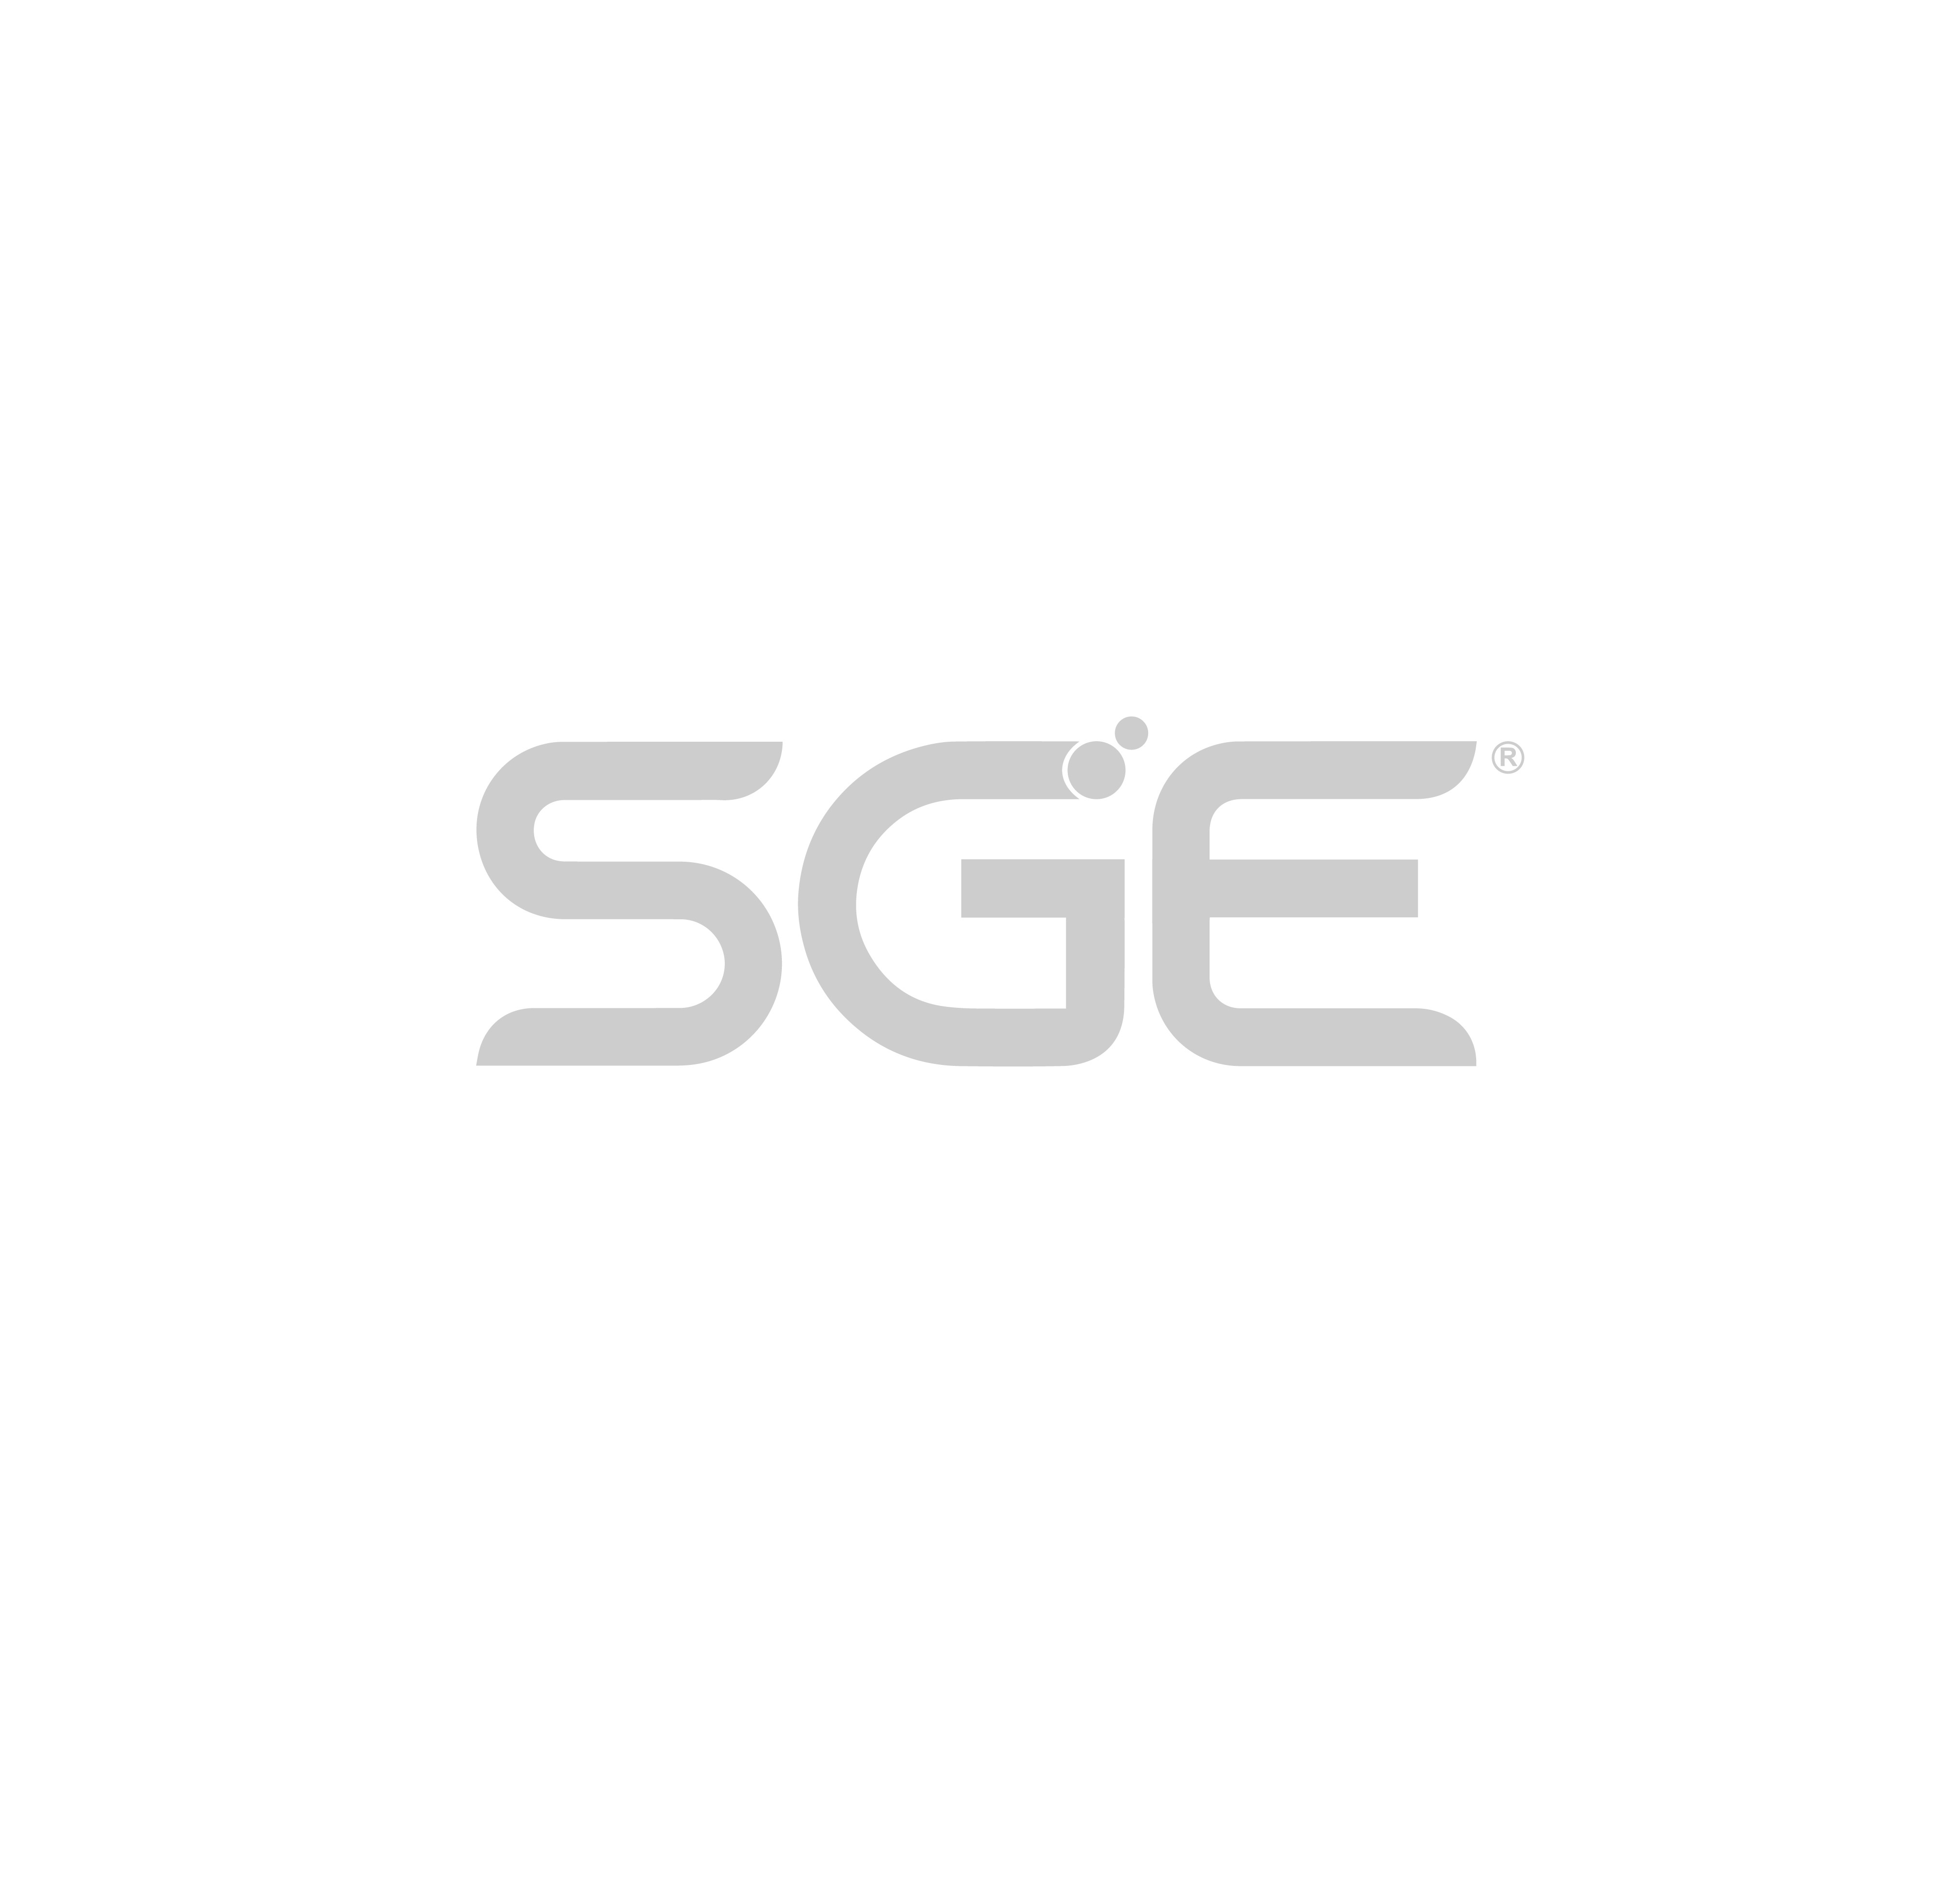 Led Smd Para Backlight Tv Pantalla Led 3Mm*1.4Mm